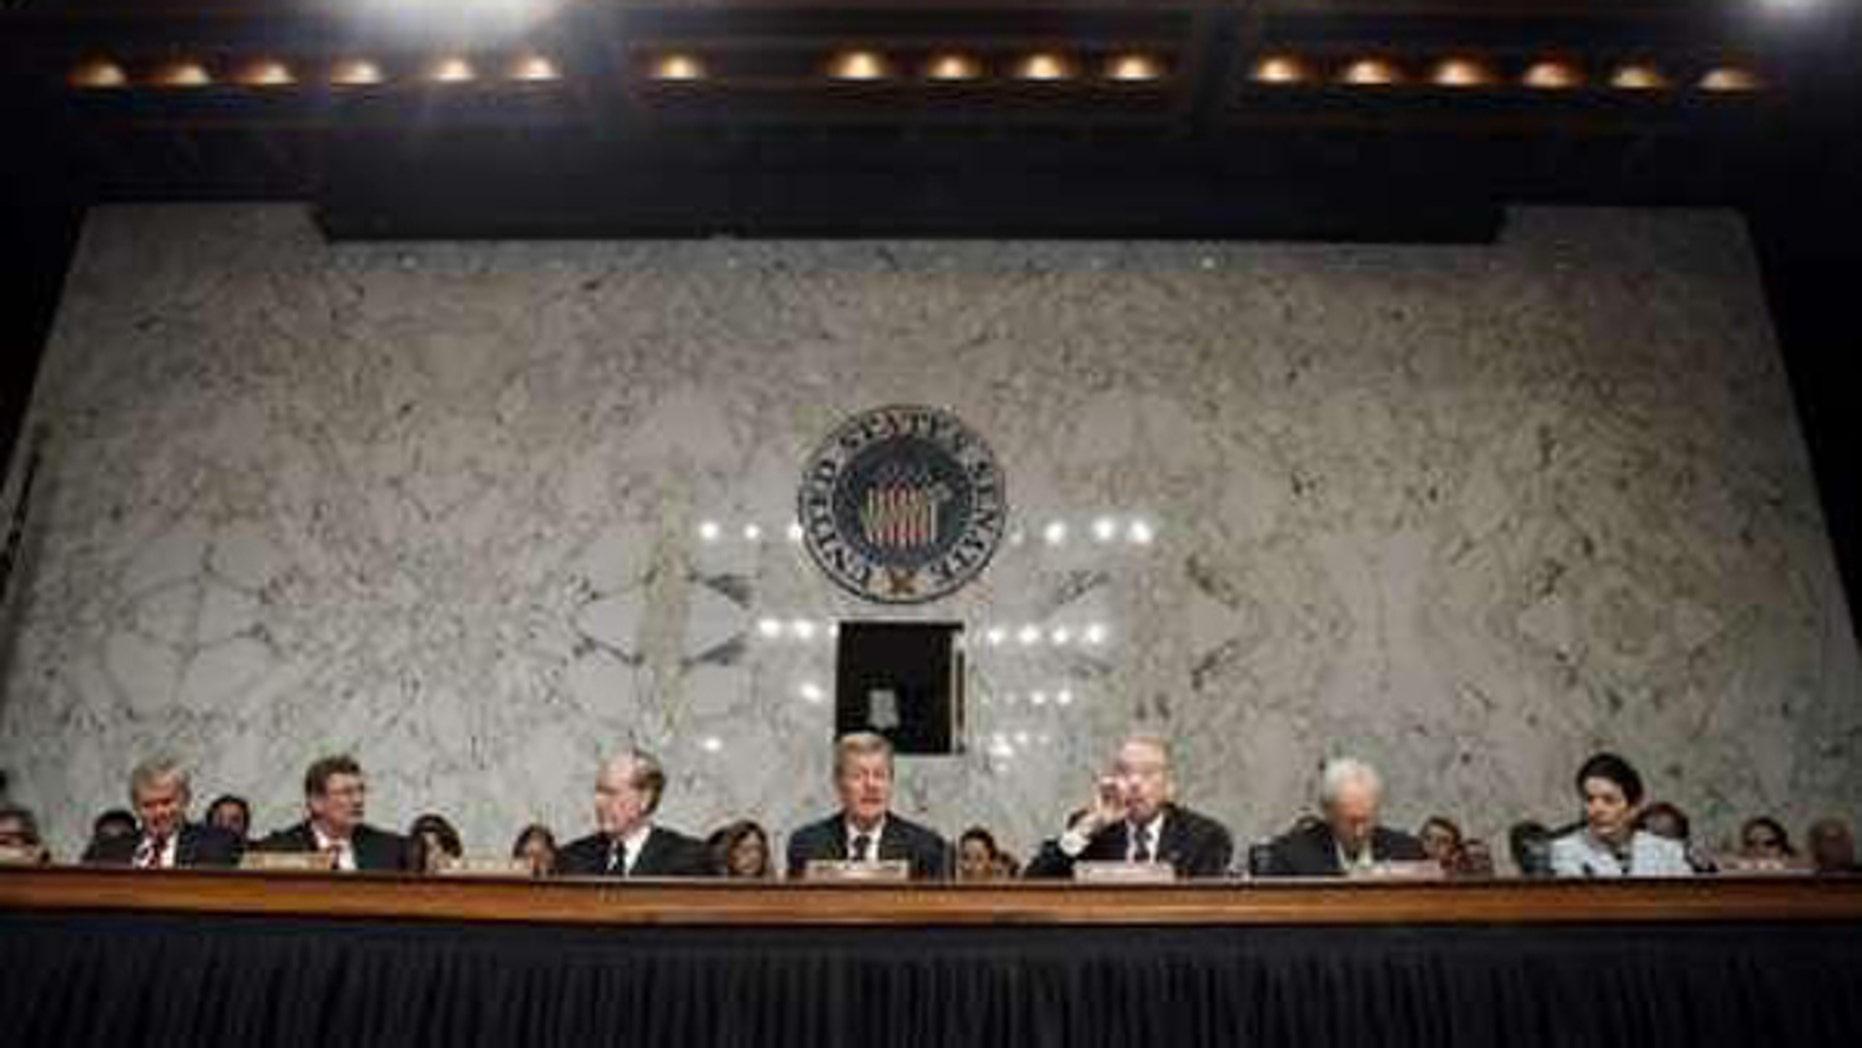 Sen. Max Baucus, center, chairman of the Senate Finance Committee, speaks alongside other panel members before a health care vote in Washington Oct. 13. (Reuters Photo)